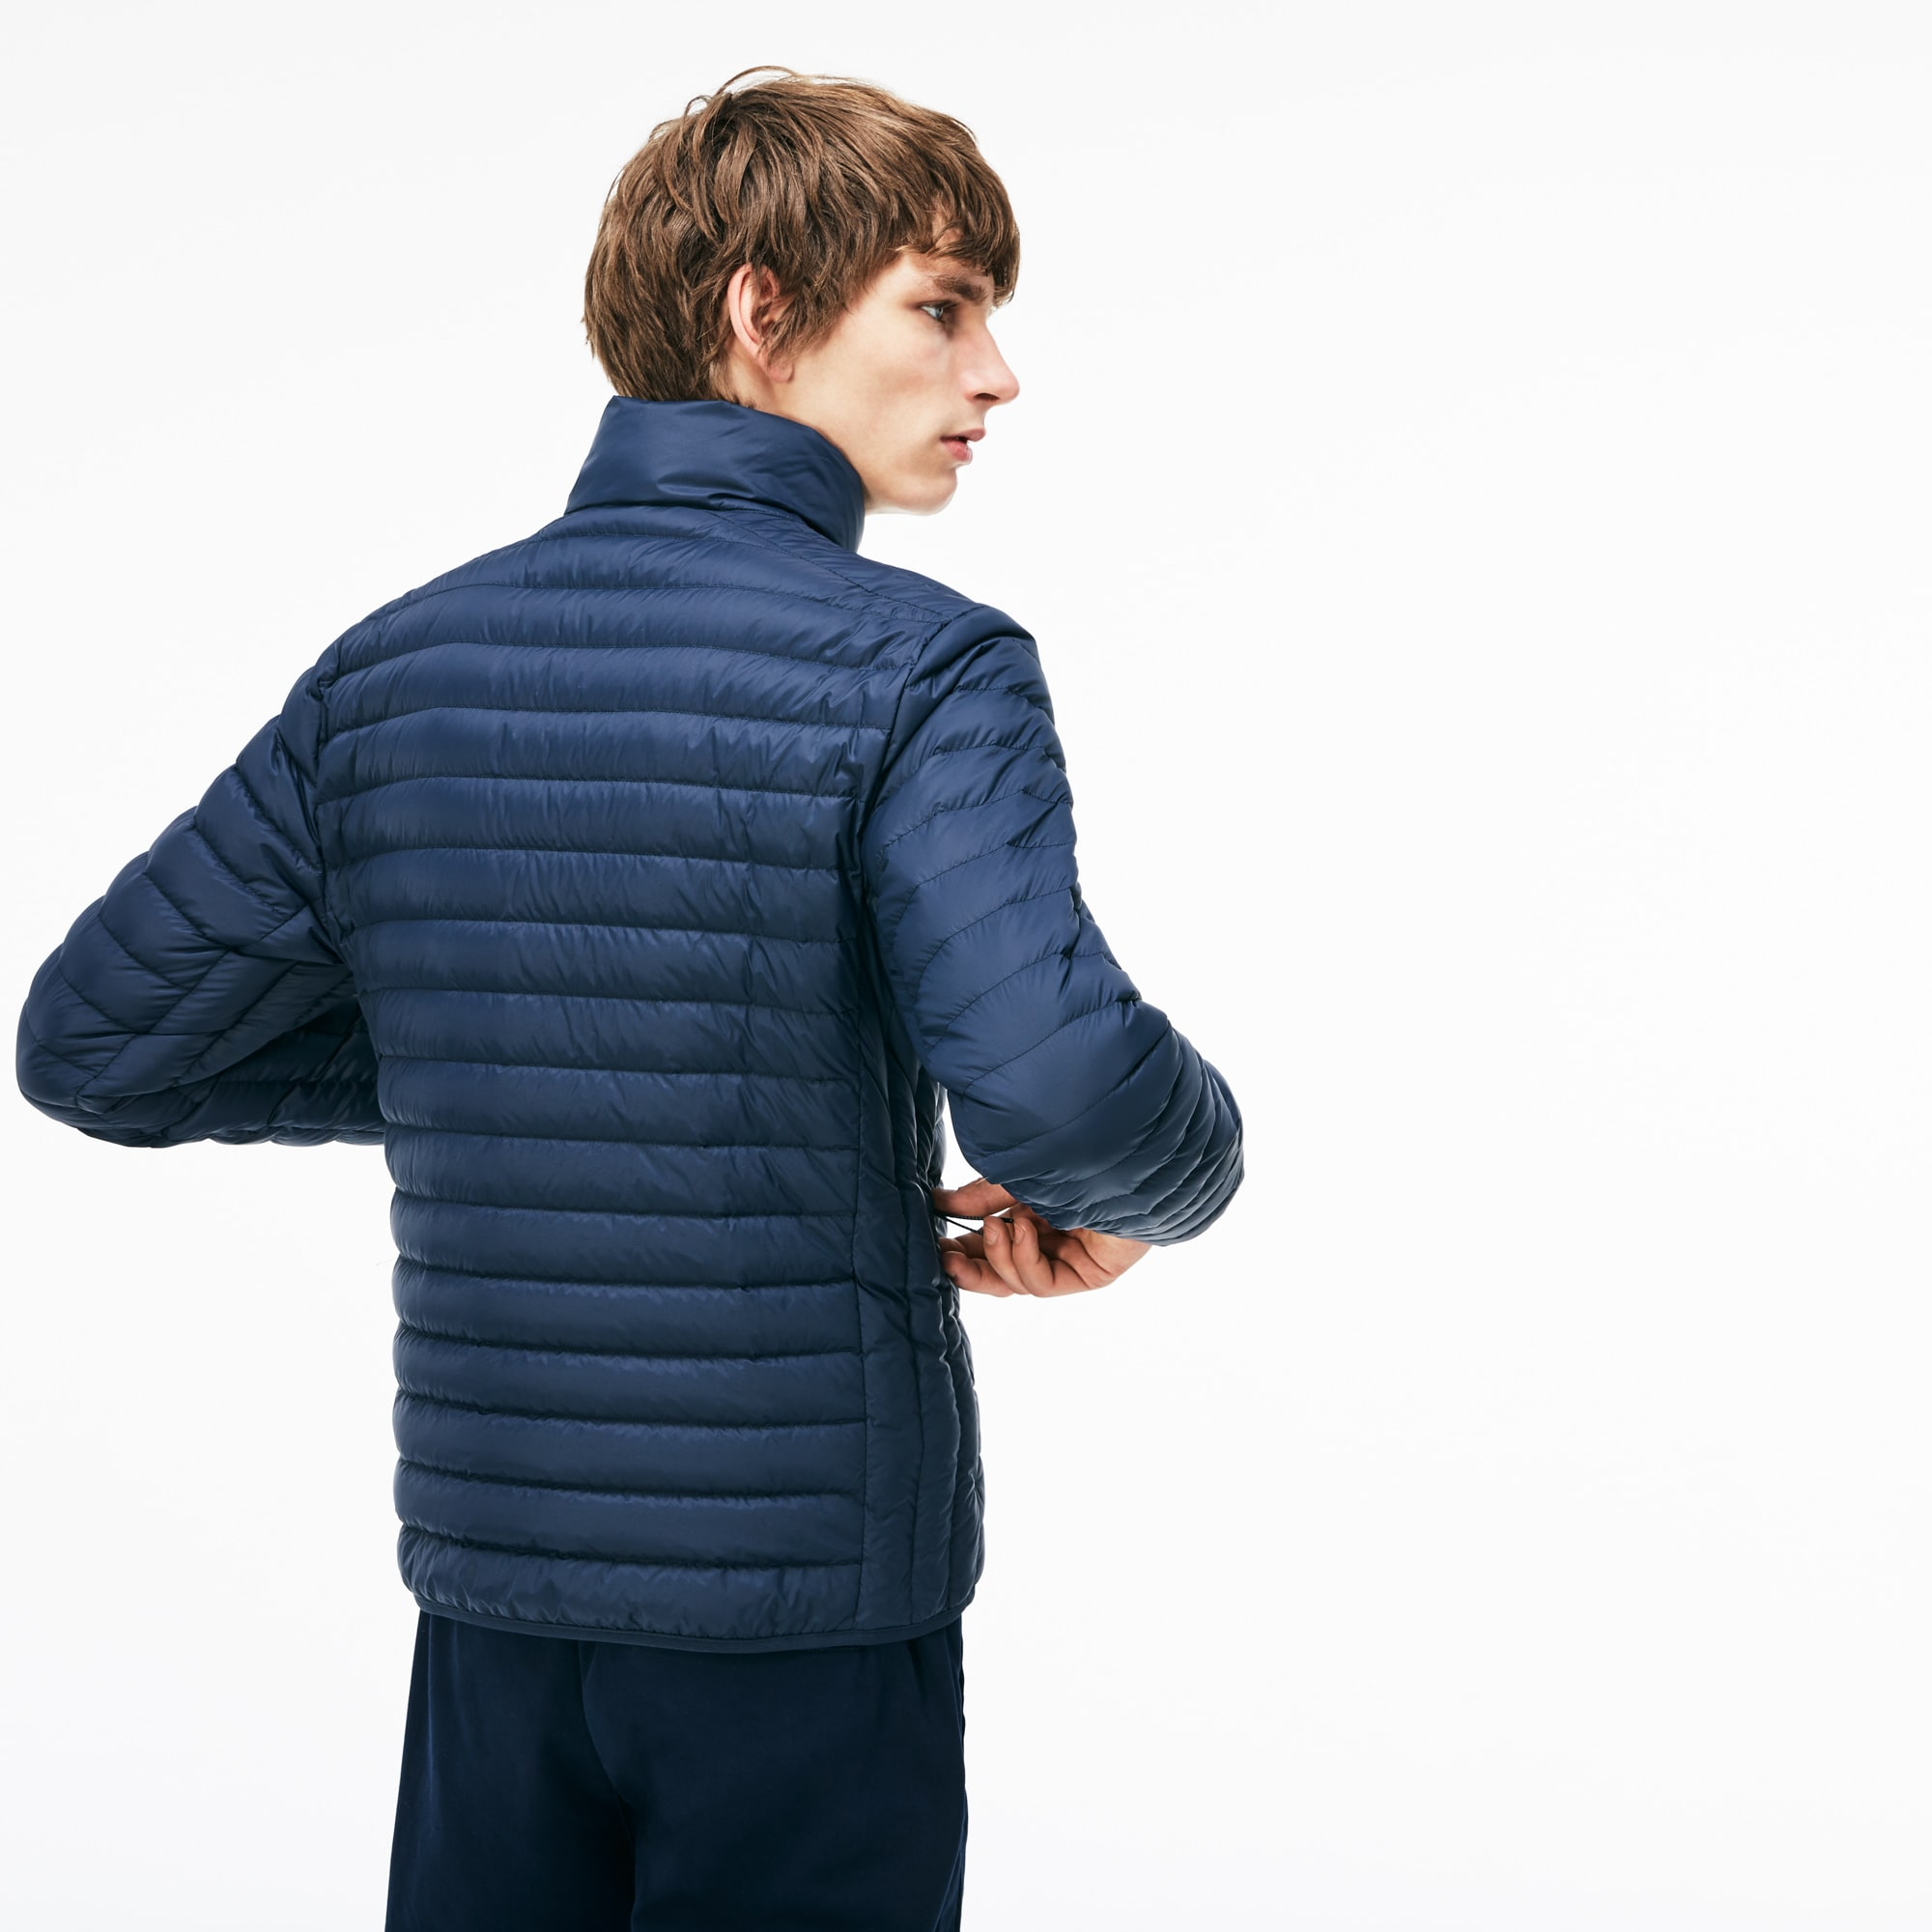 f179d280 Men's Short Contrast Lining Down Jacket